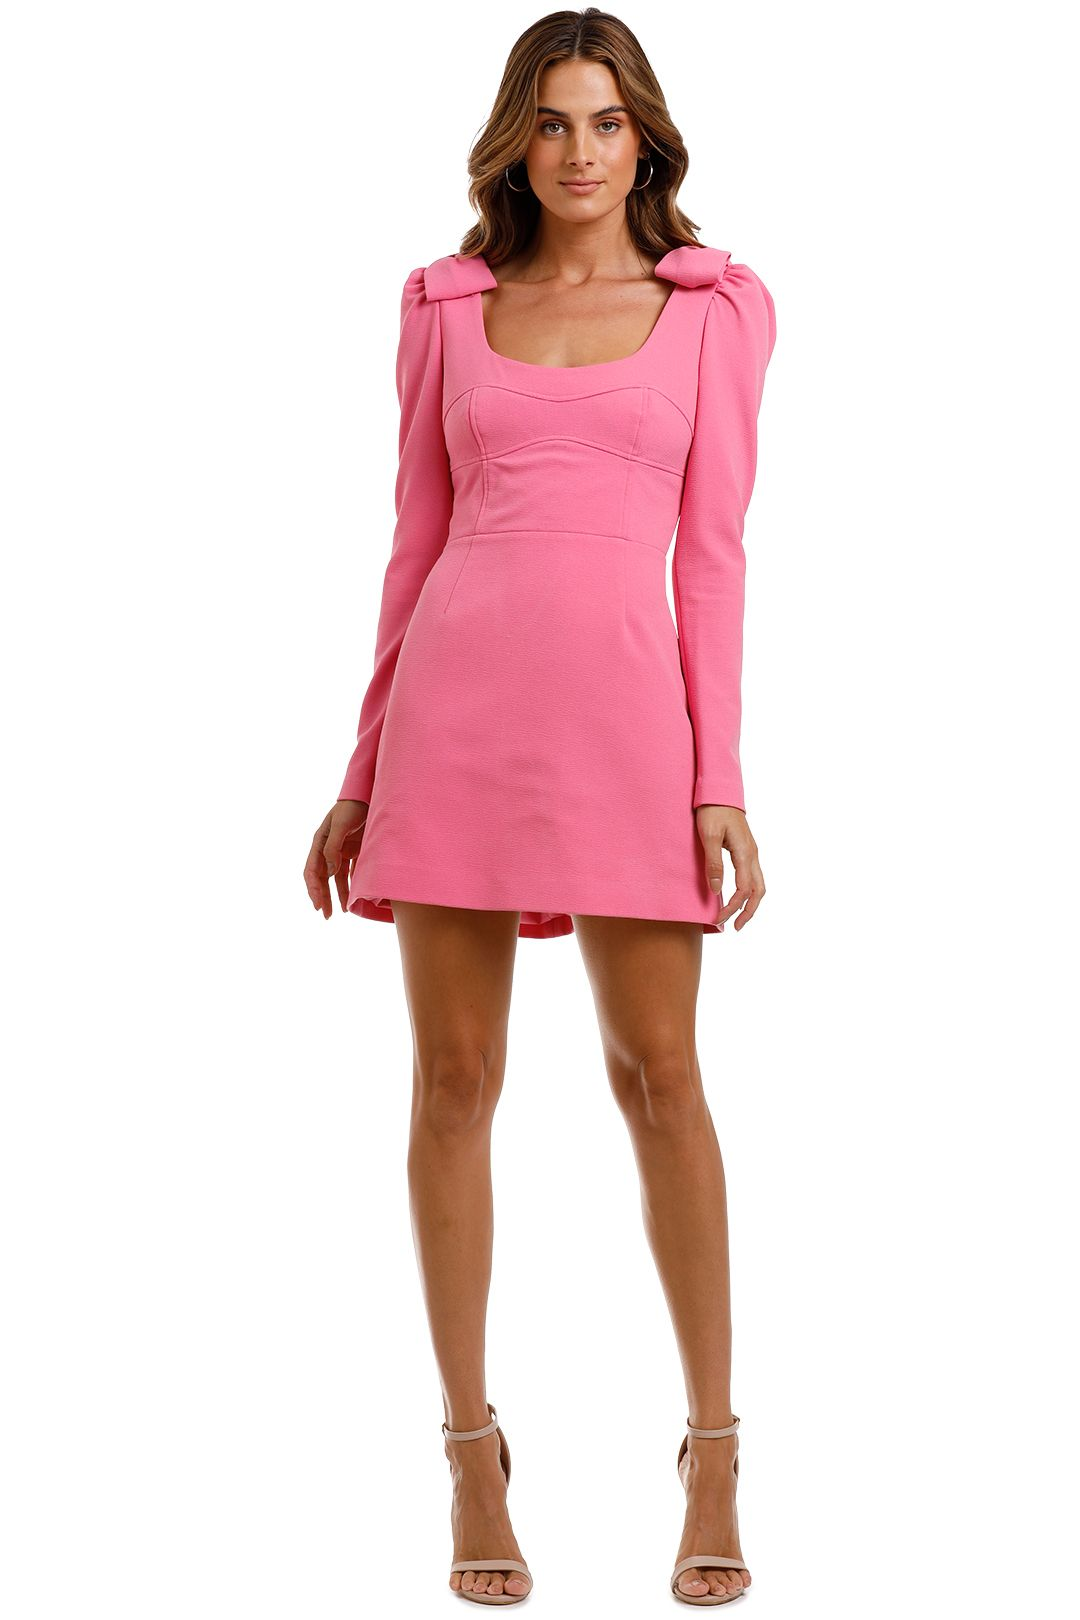 Rebecca Vallance Love Mini Dress Pink